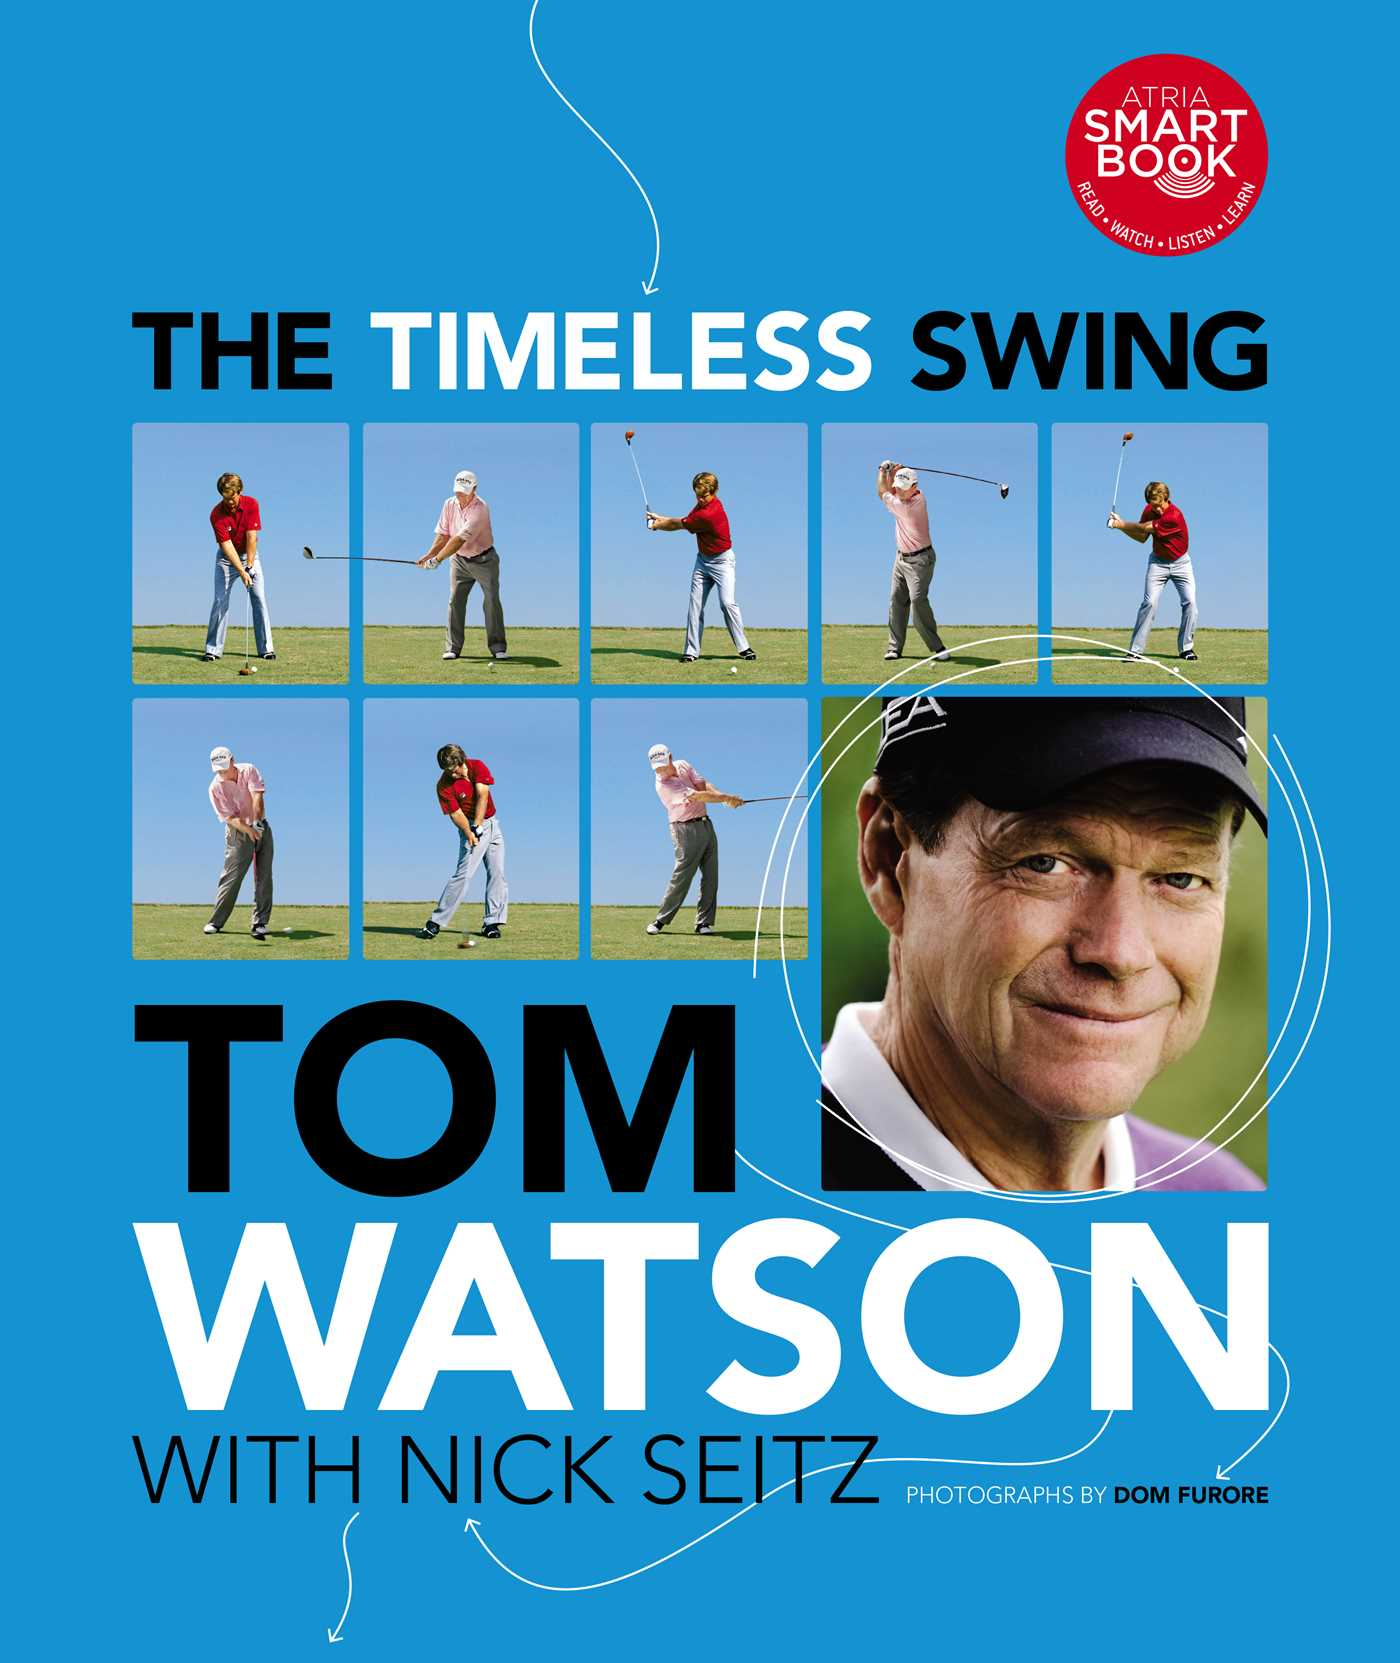 The timeless swing 9781451654783 hr